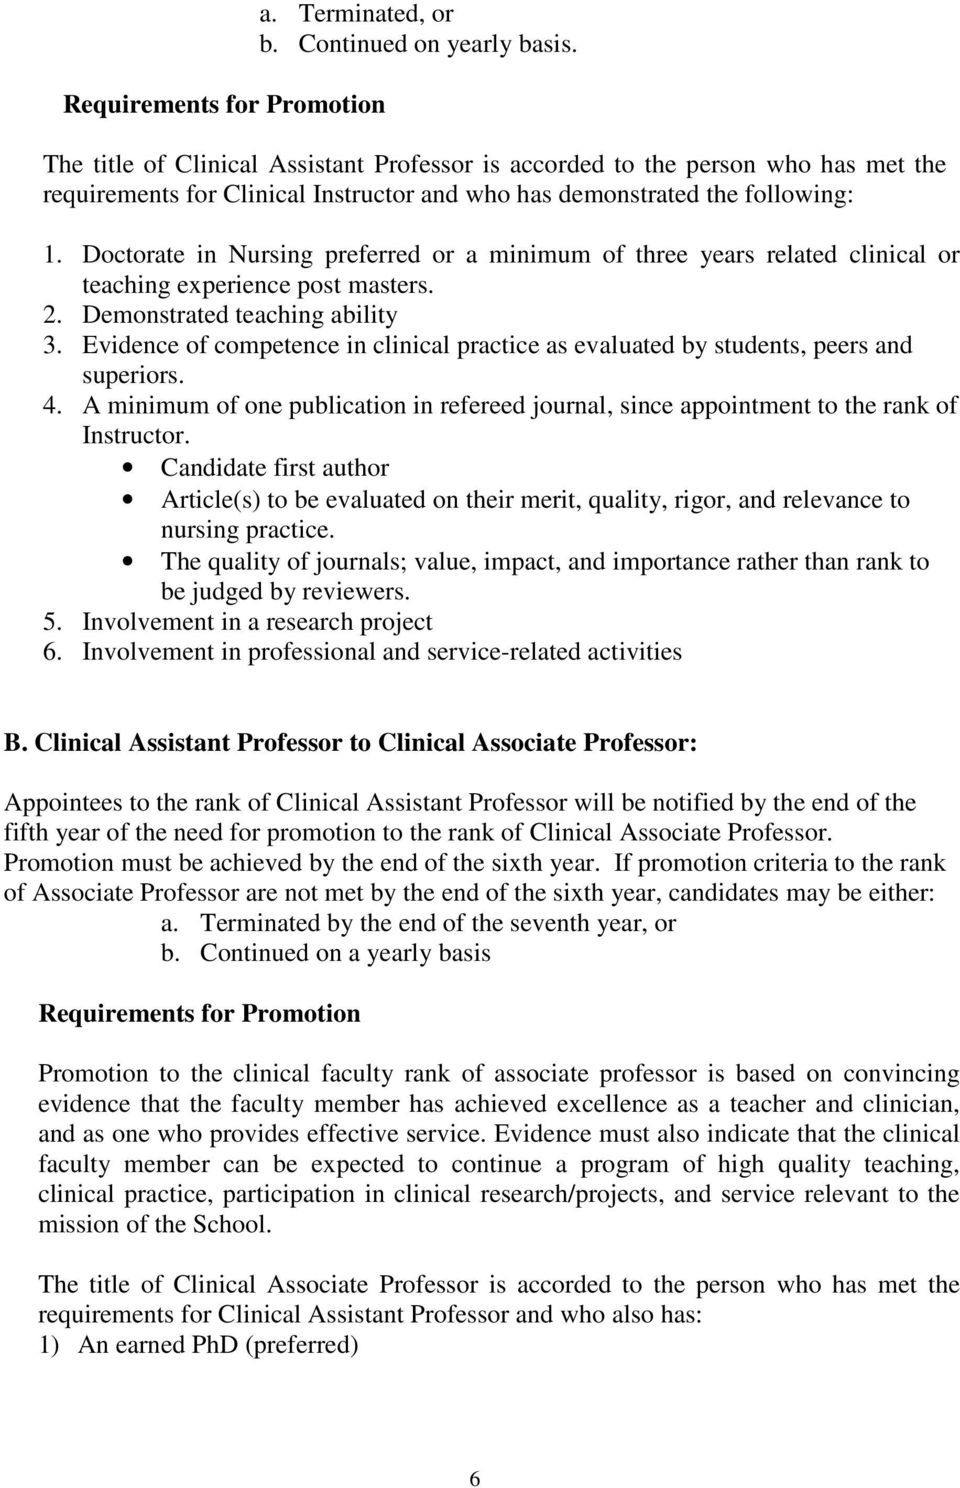 Doctorate in Nursing preferred or a minimum of three years related clinical or teaching experience post masters. 2. Demonstrated teaching ability 3.